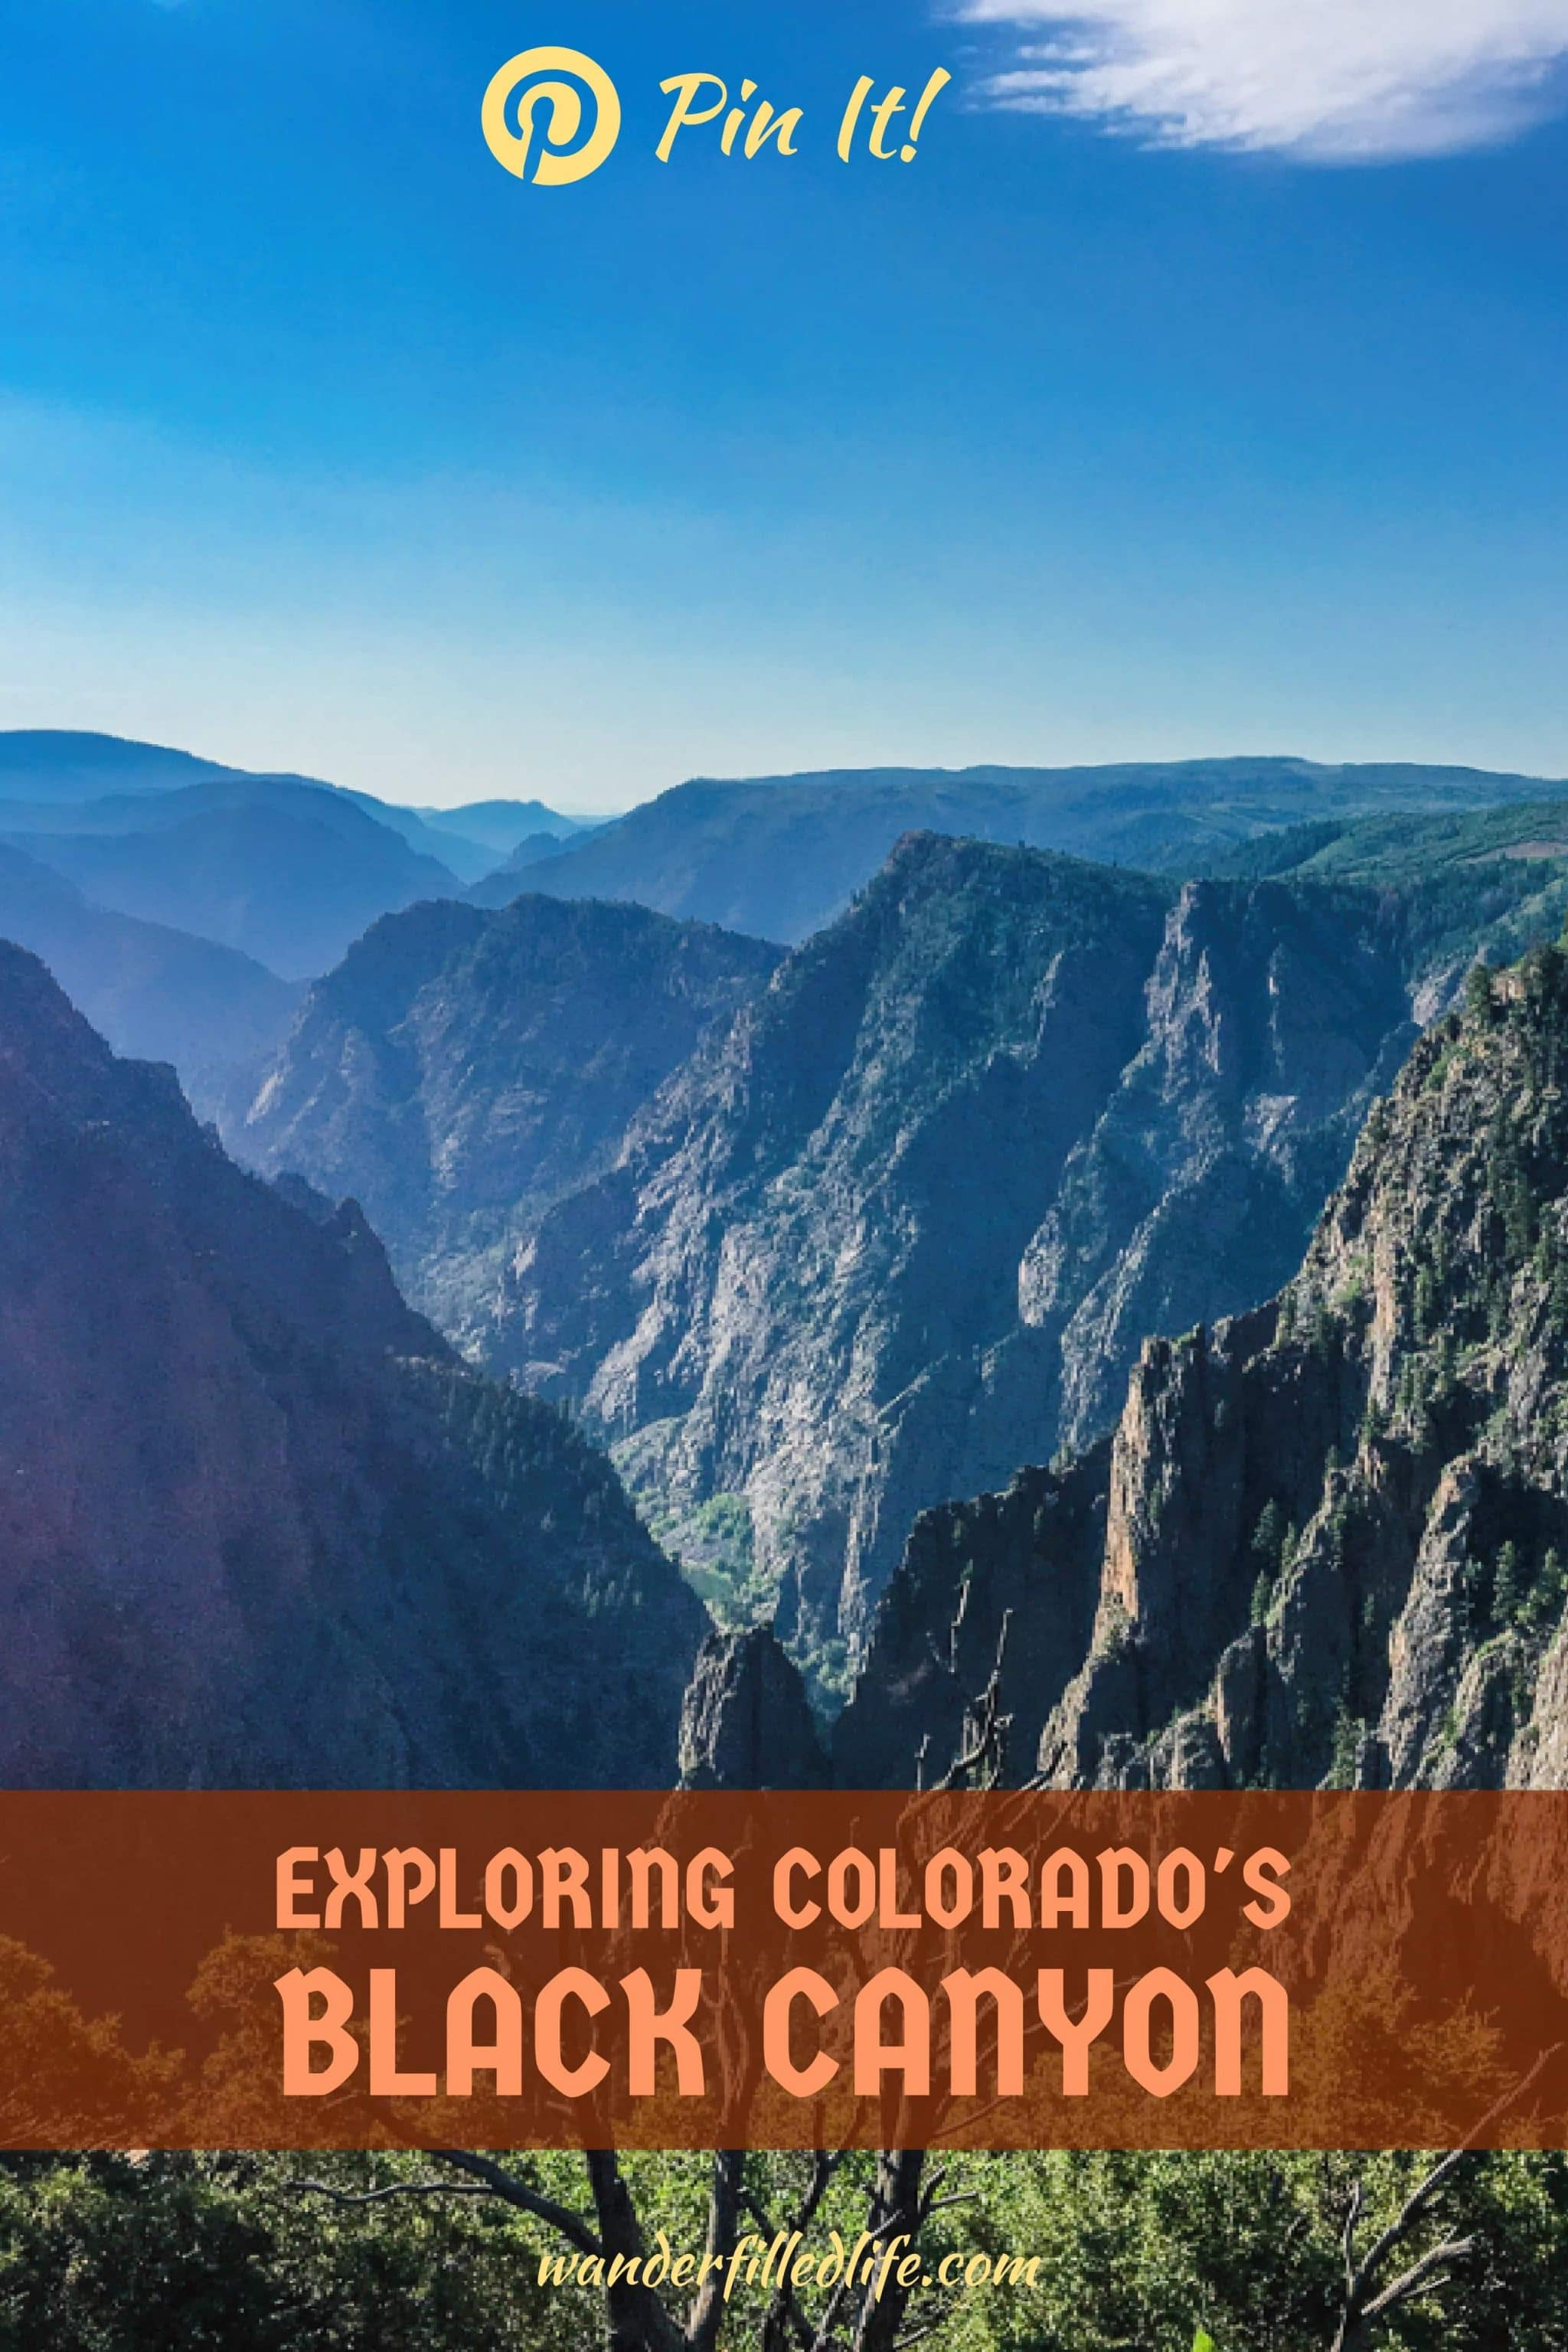 A visit to Colorado's Black Canyon of the Gunnison National Park and Curecanti National Recreation Area. Both are hidden gems in Western Colorado.